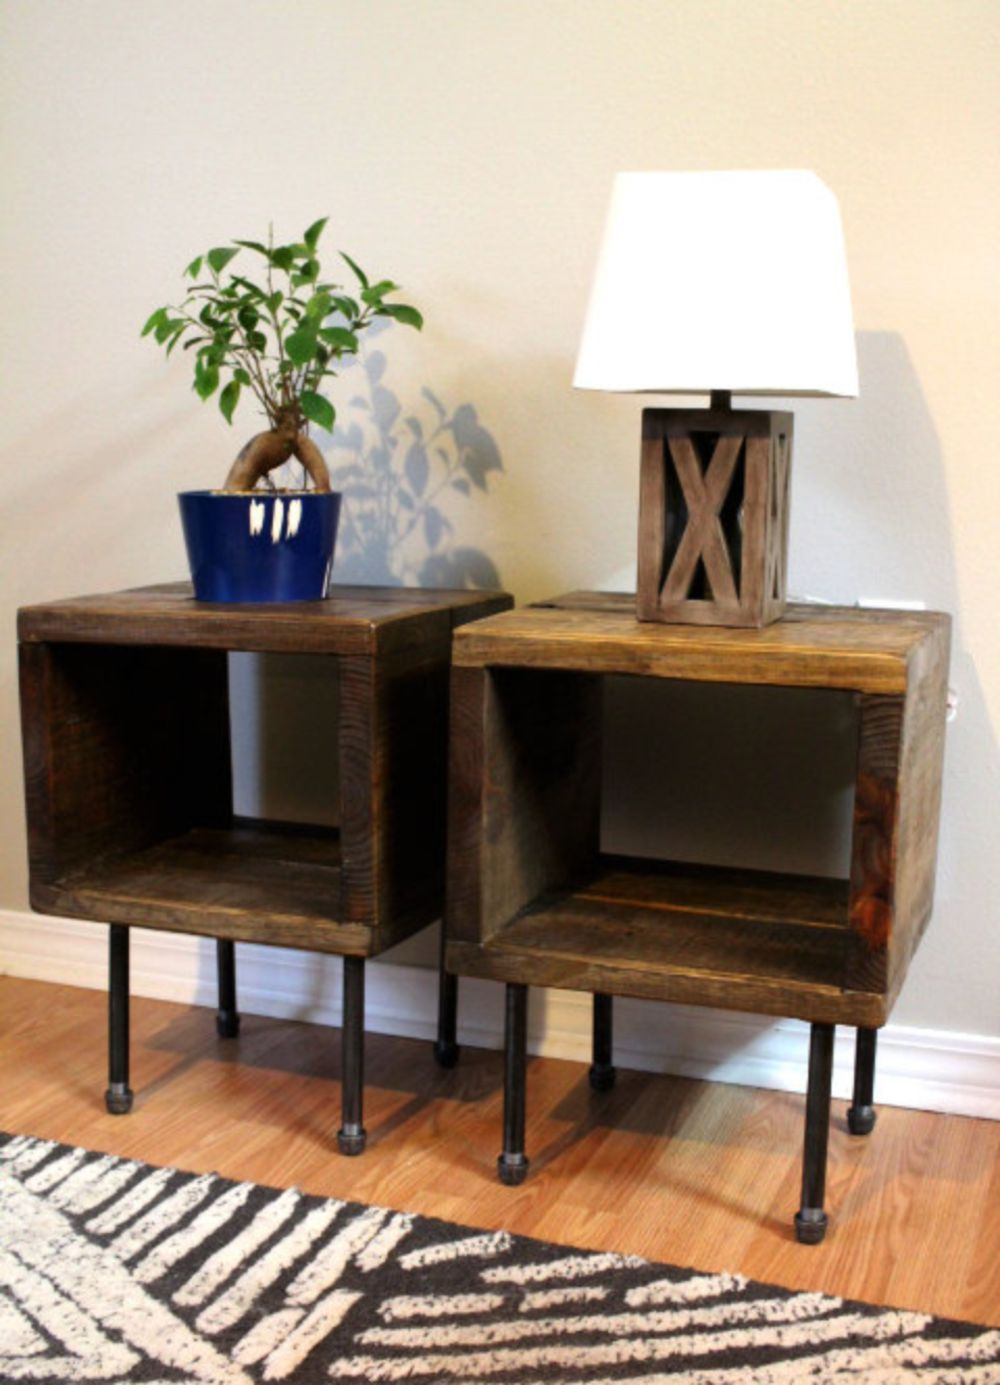 Awesome Rustic Industrial Furniture Decor Rustic industrial